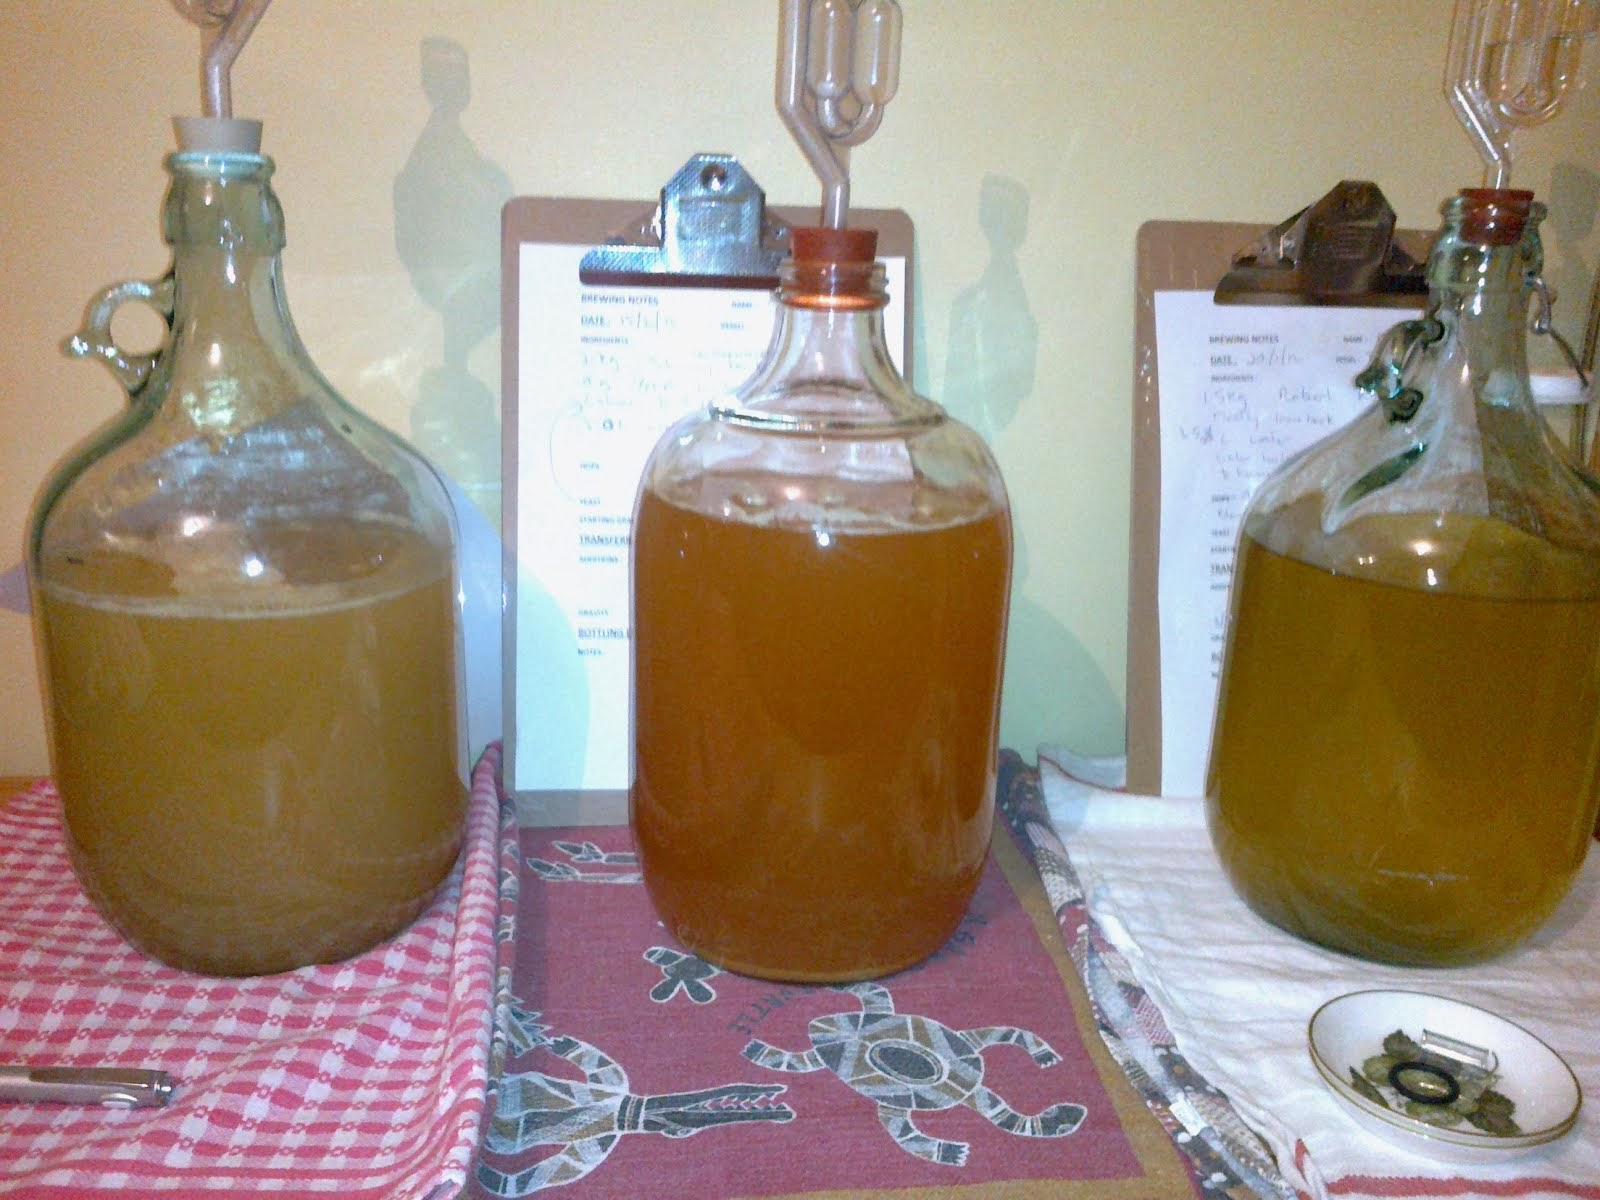 Mead Glorious Mead